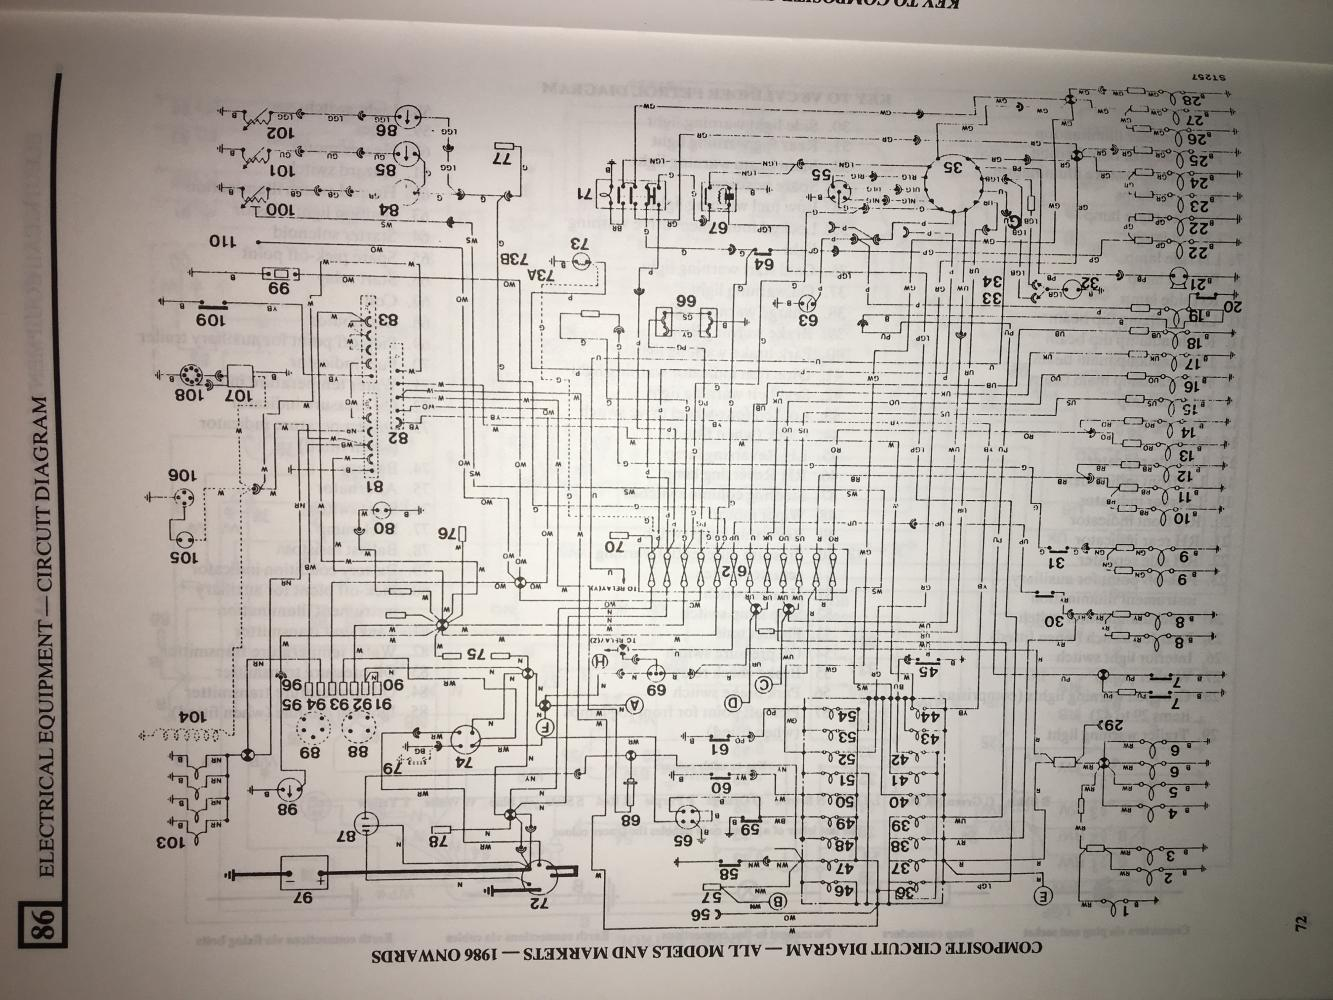 rover rancher wiring diagram early row wiring diagram? - defender source rover 216 wiring diagram